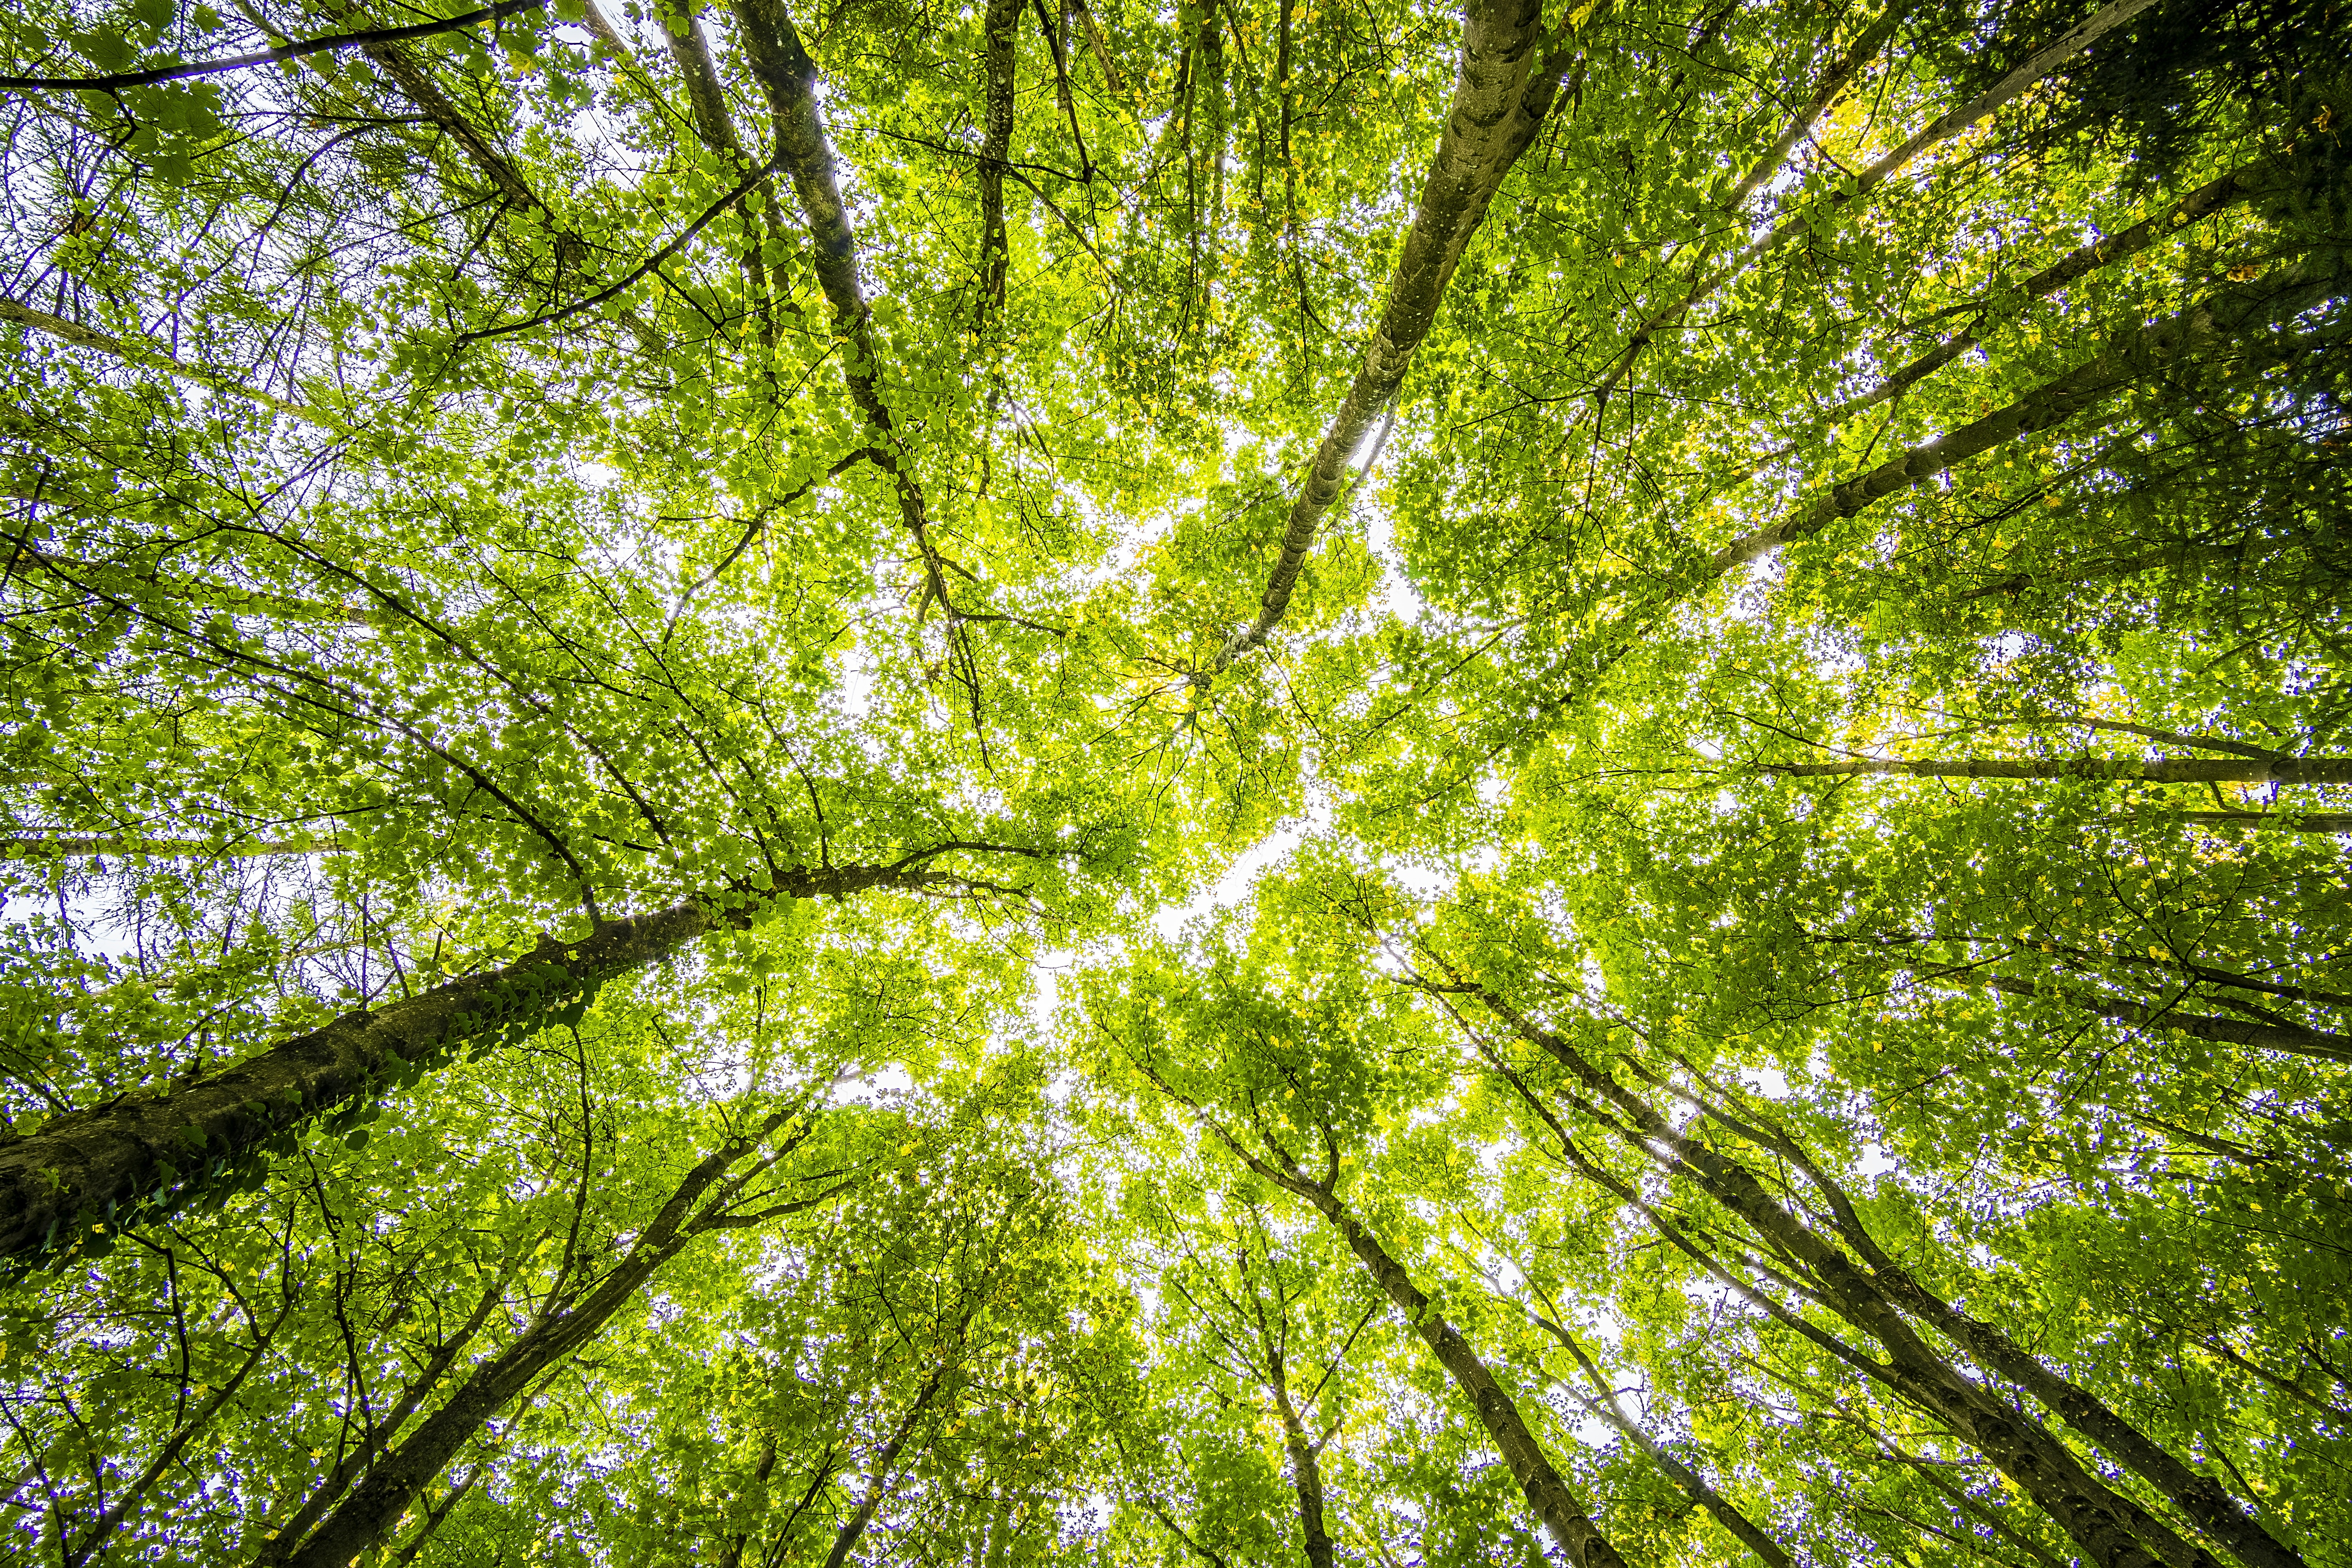 worms-eyeview-of-green-trees-957024